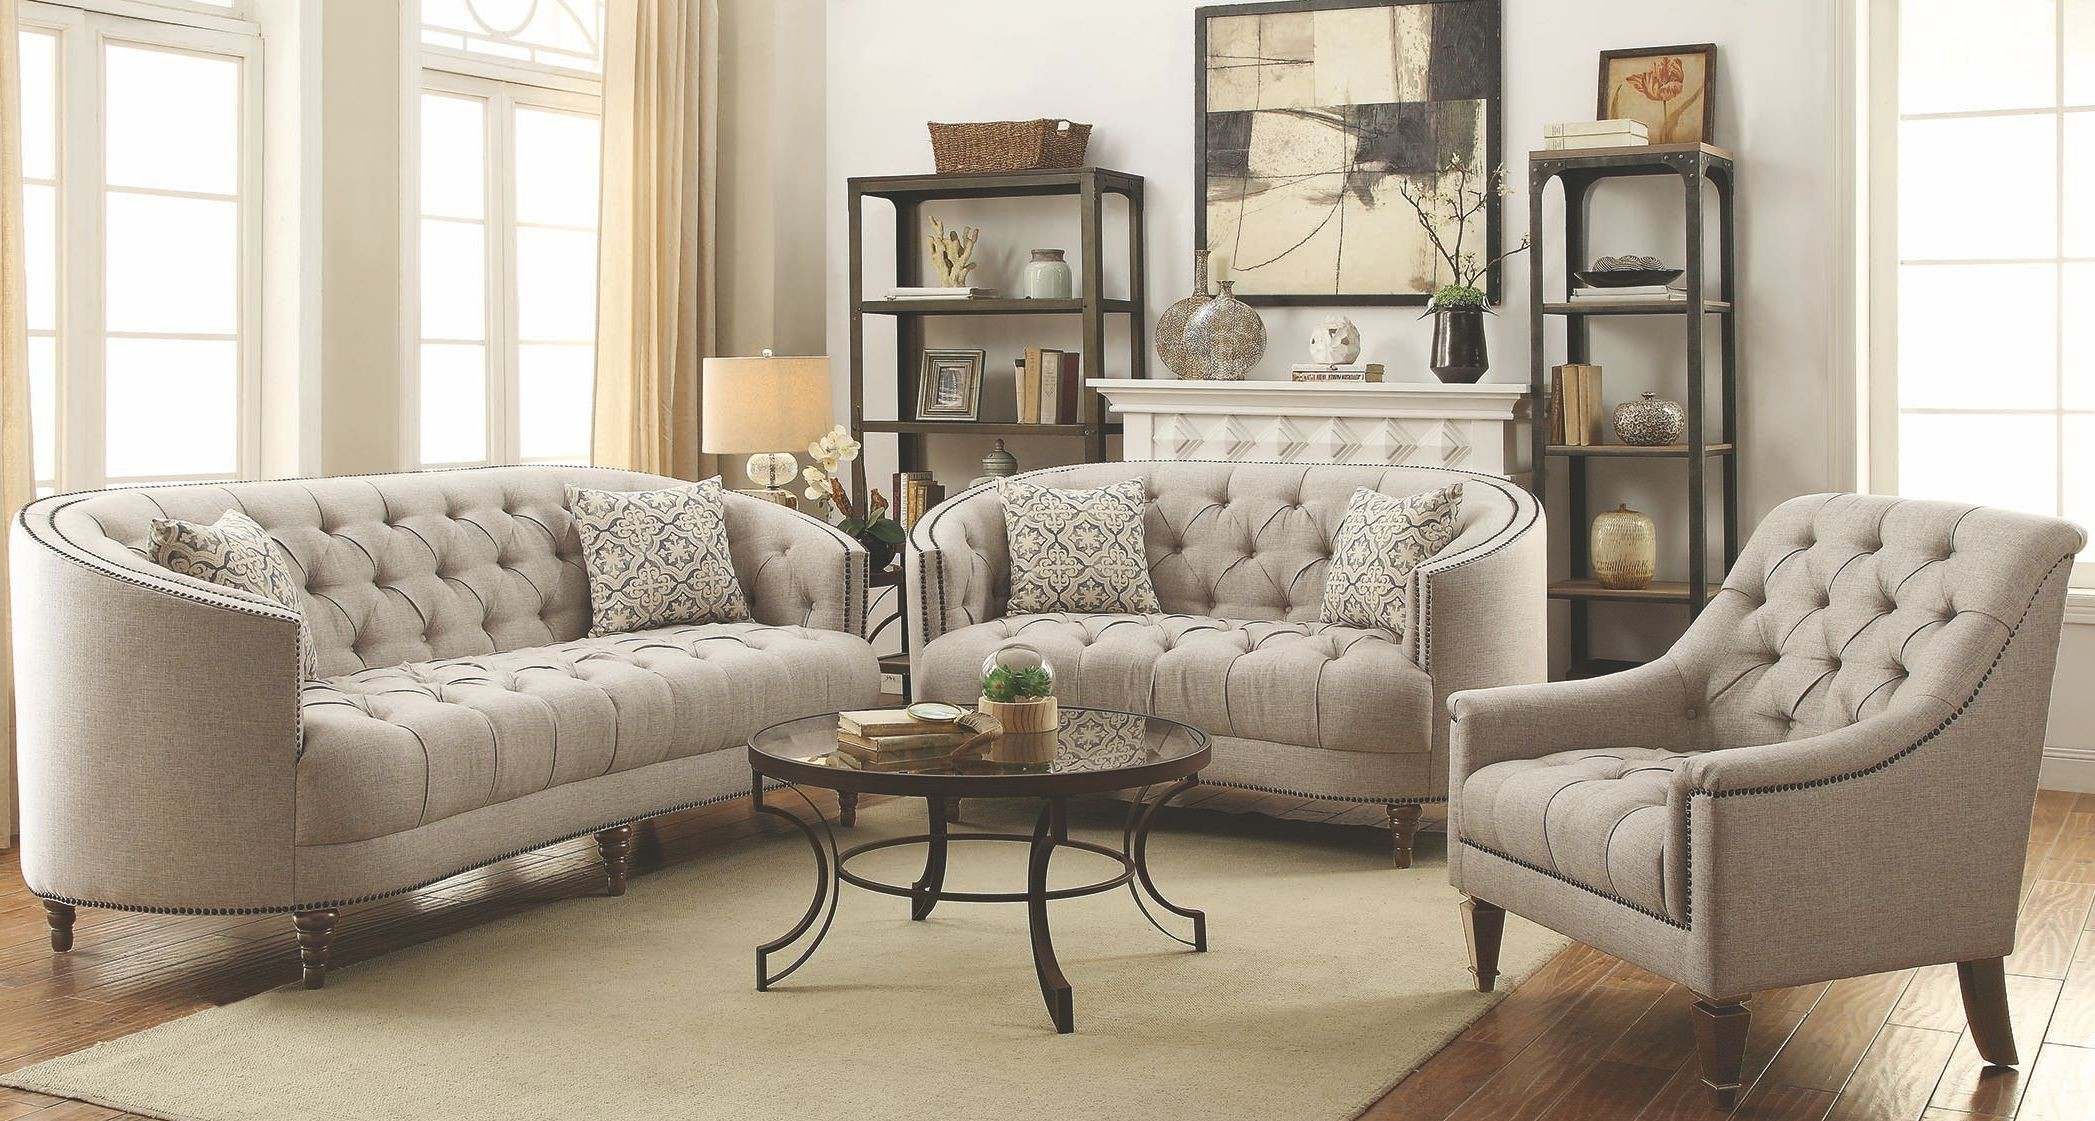 Living Room With Grey Sofa Avonlea Stone Grey Sofa